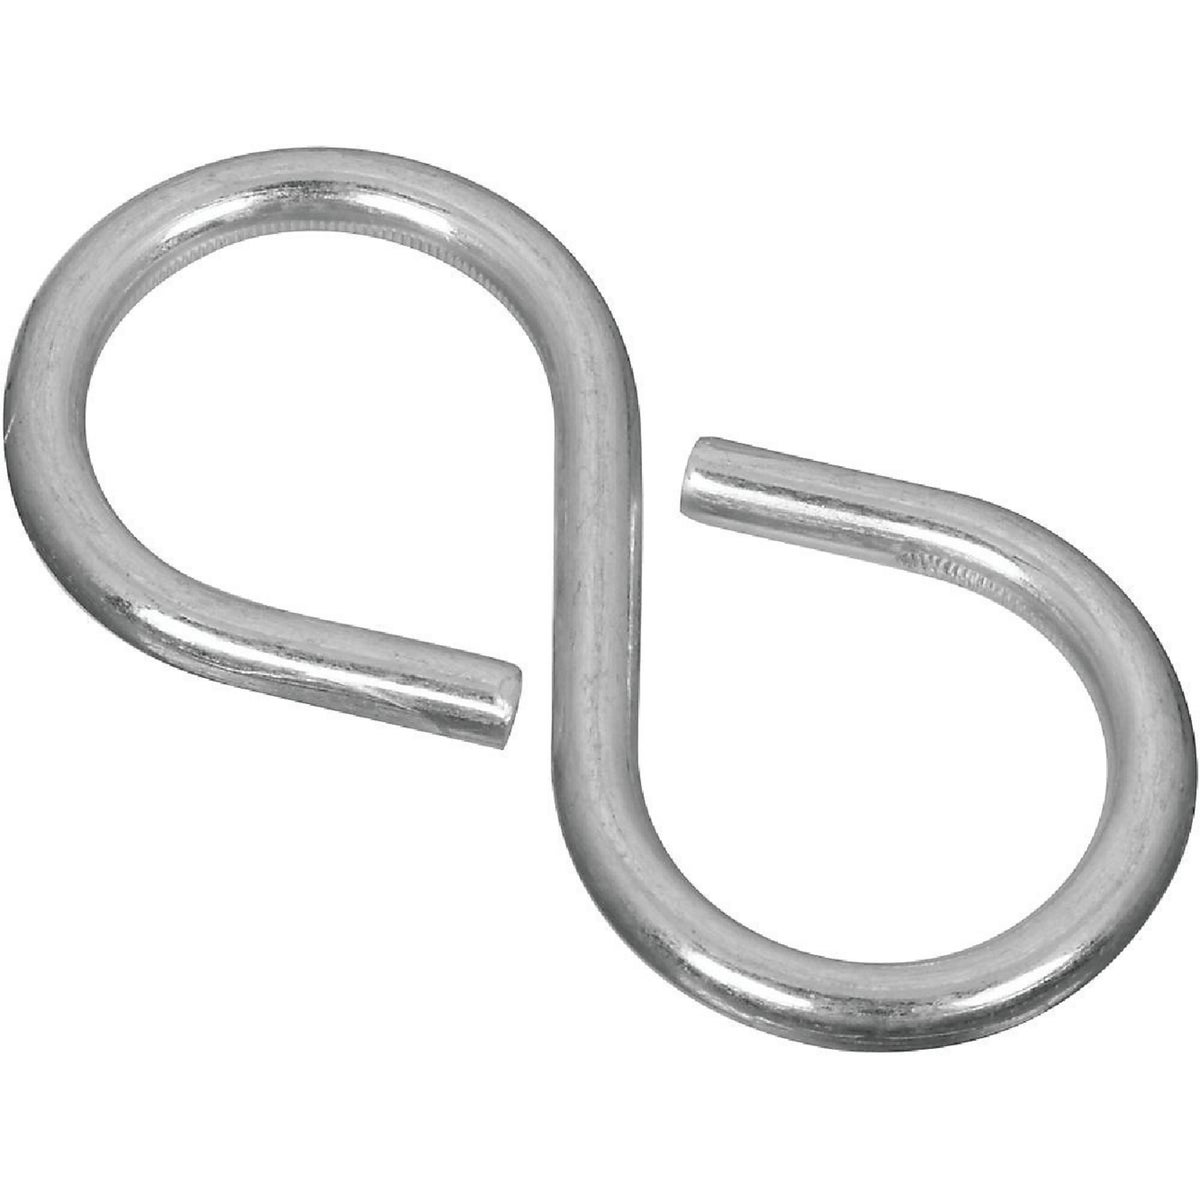 #809 LIGHT CLOSED S HOOK - N121277 by National Mfg Co